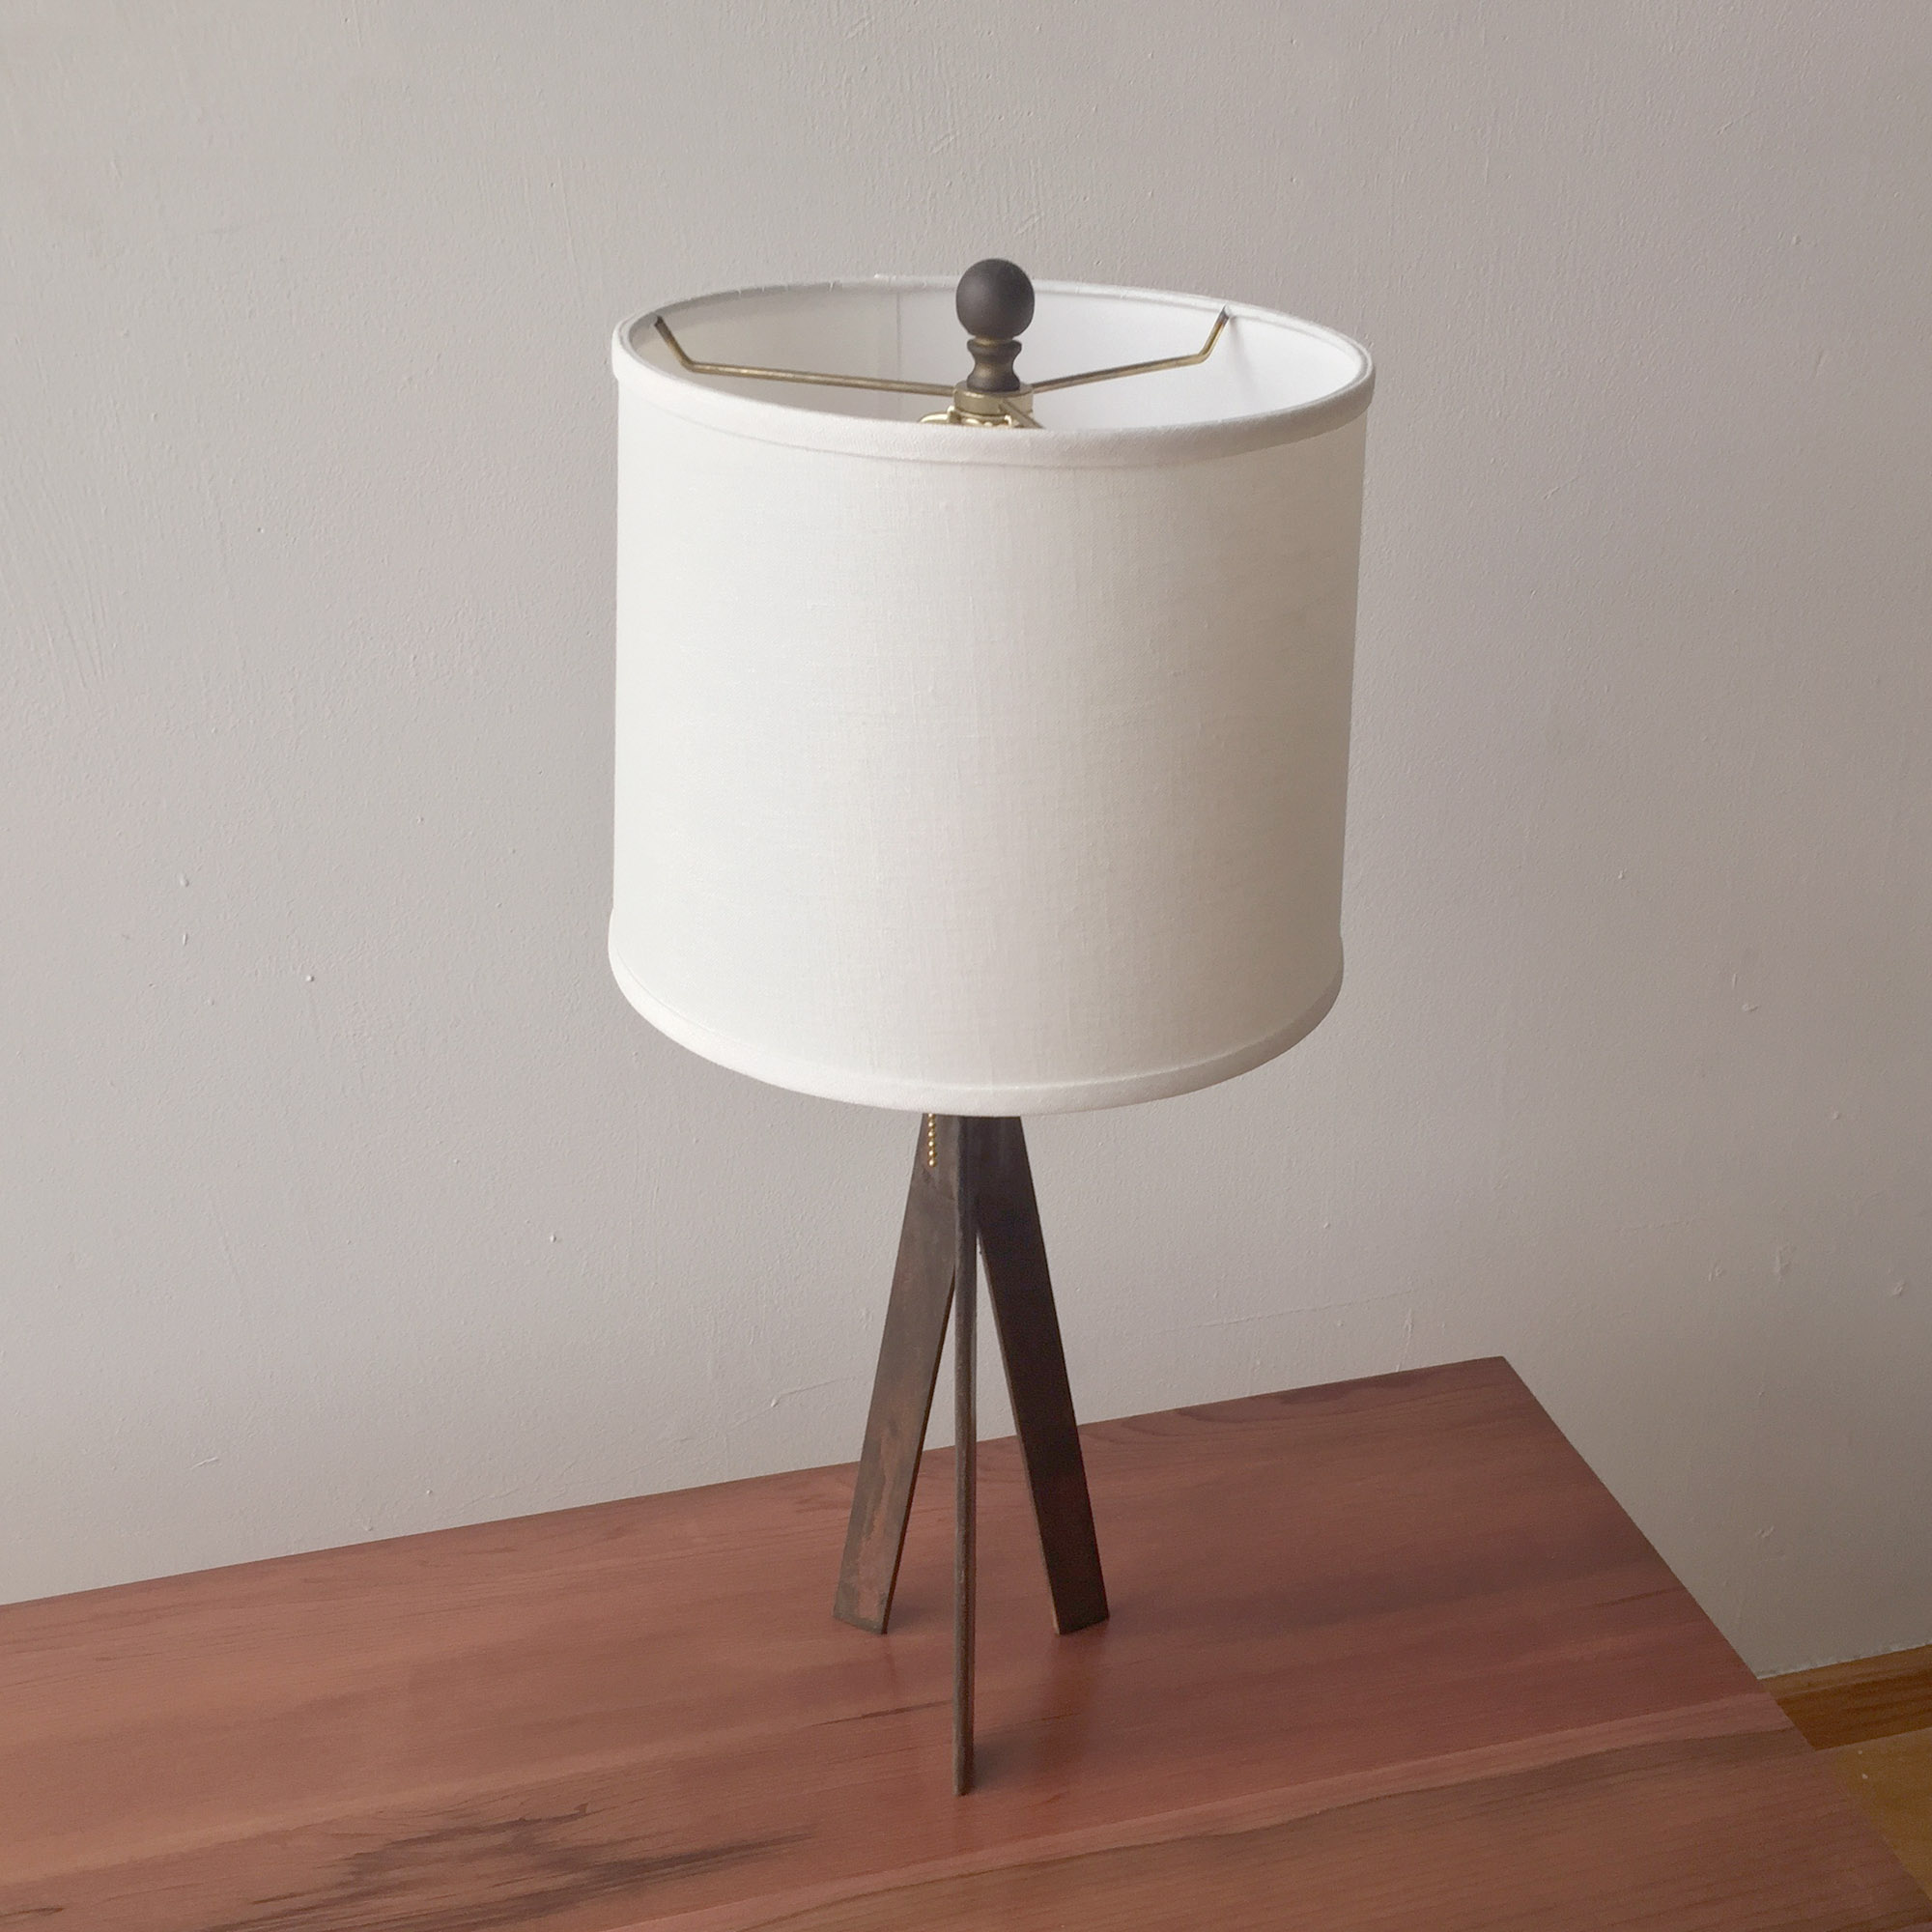 Table Lamp 1 - 3.jpg